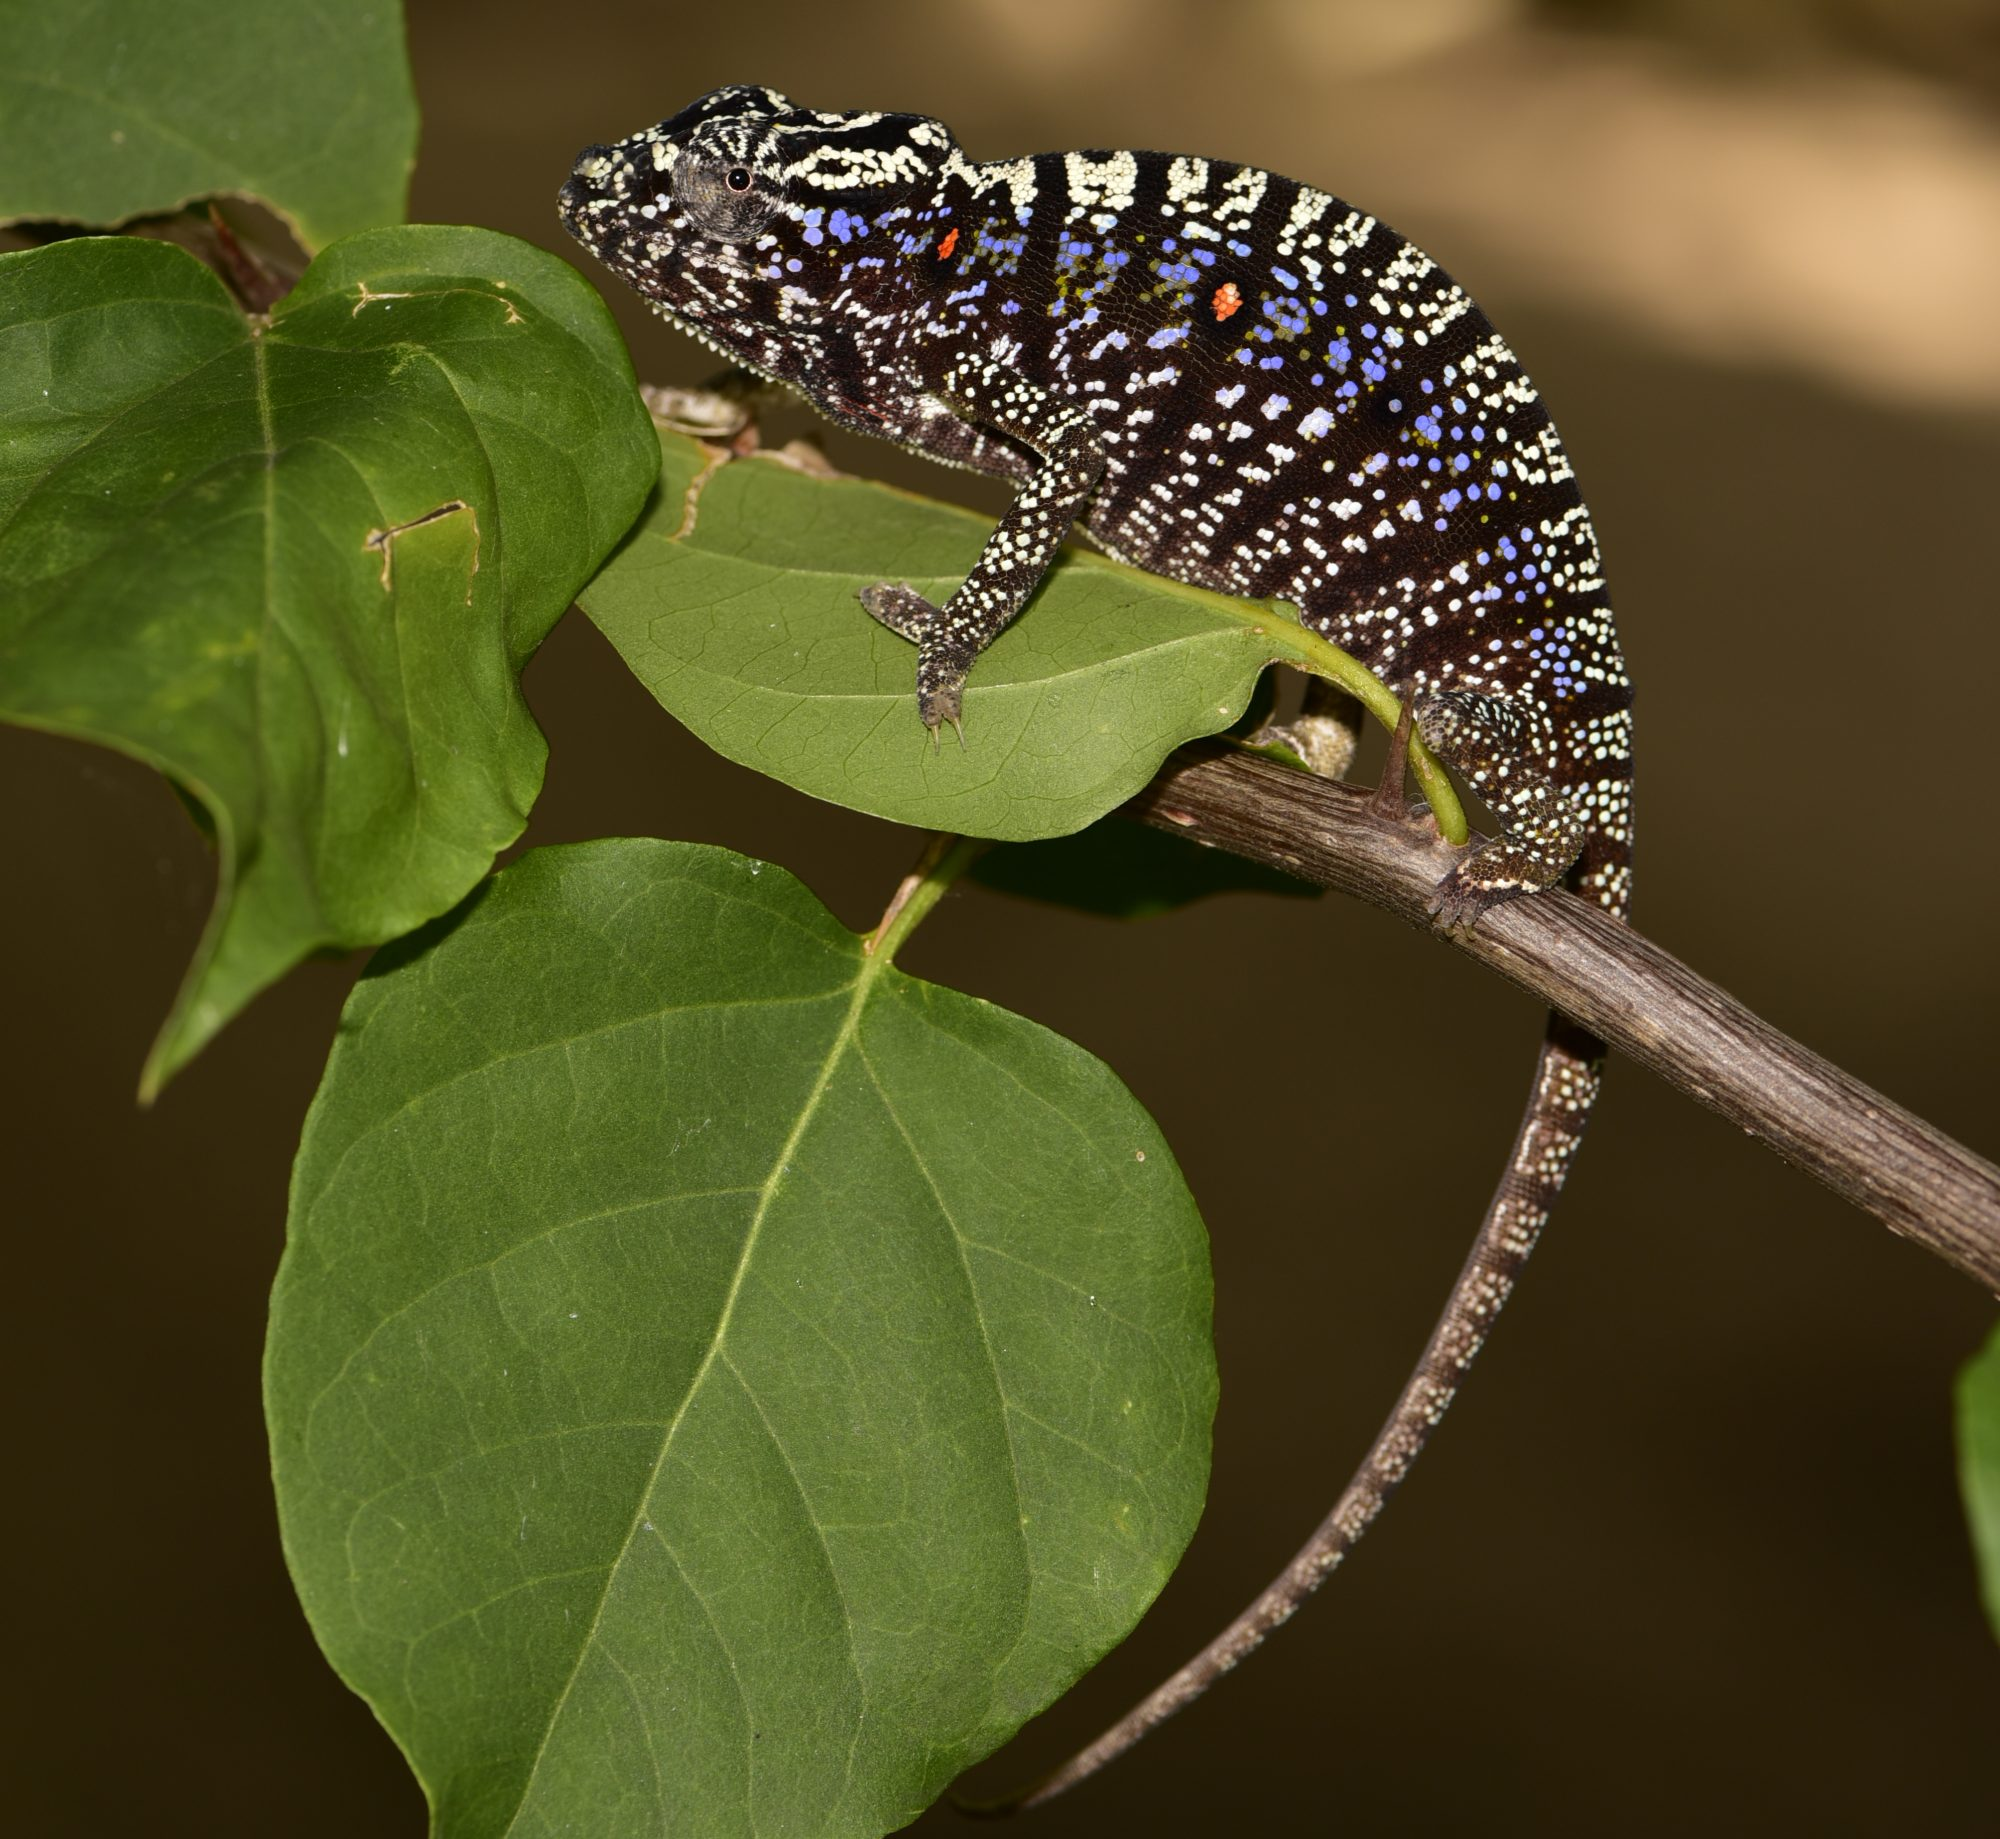 photo of female Voeltzkow's chameleon